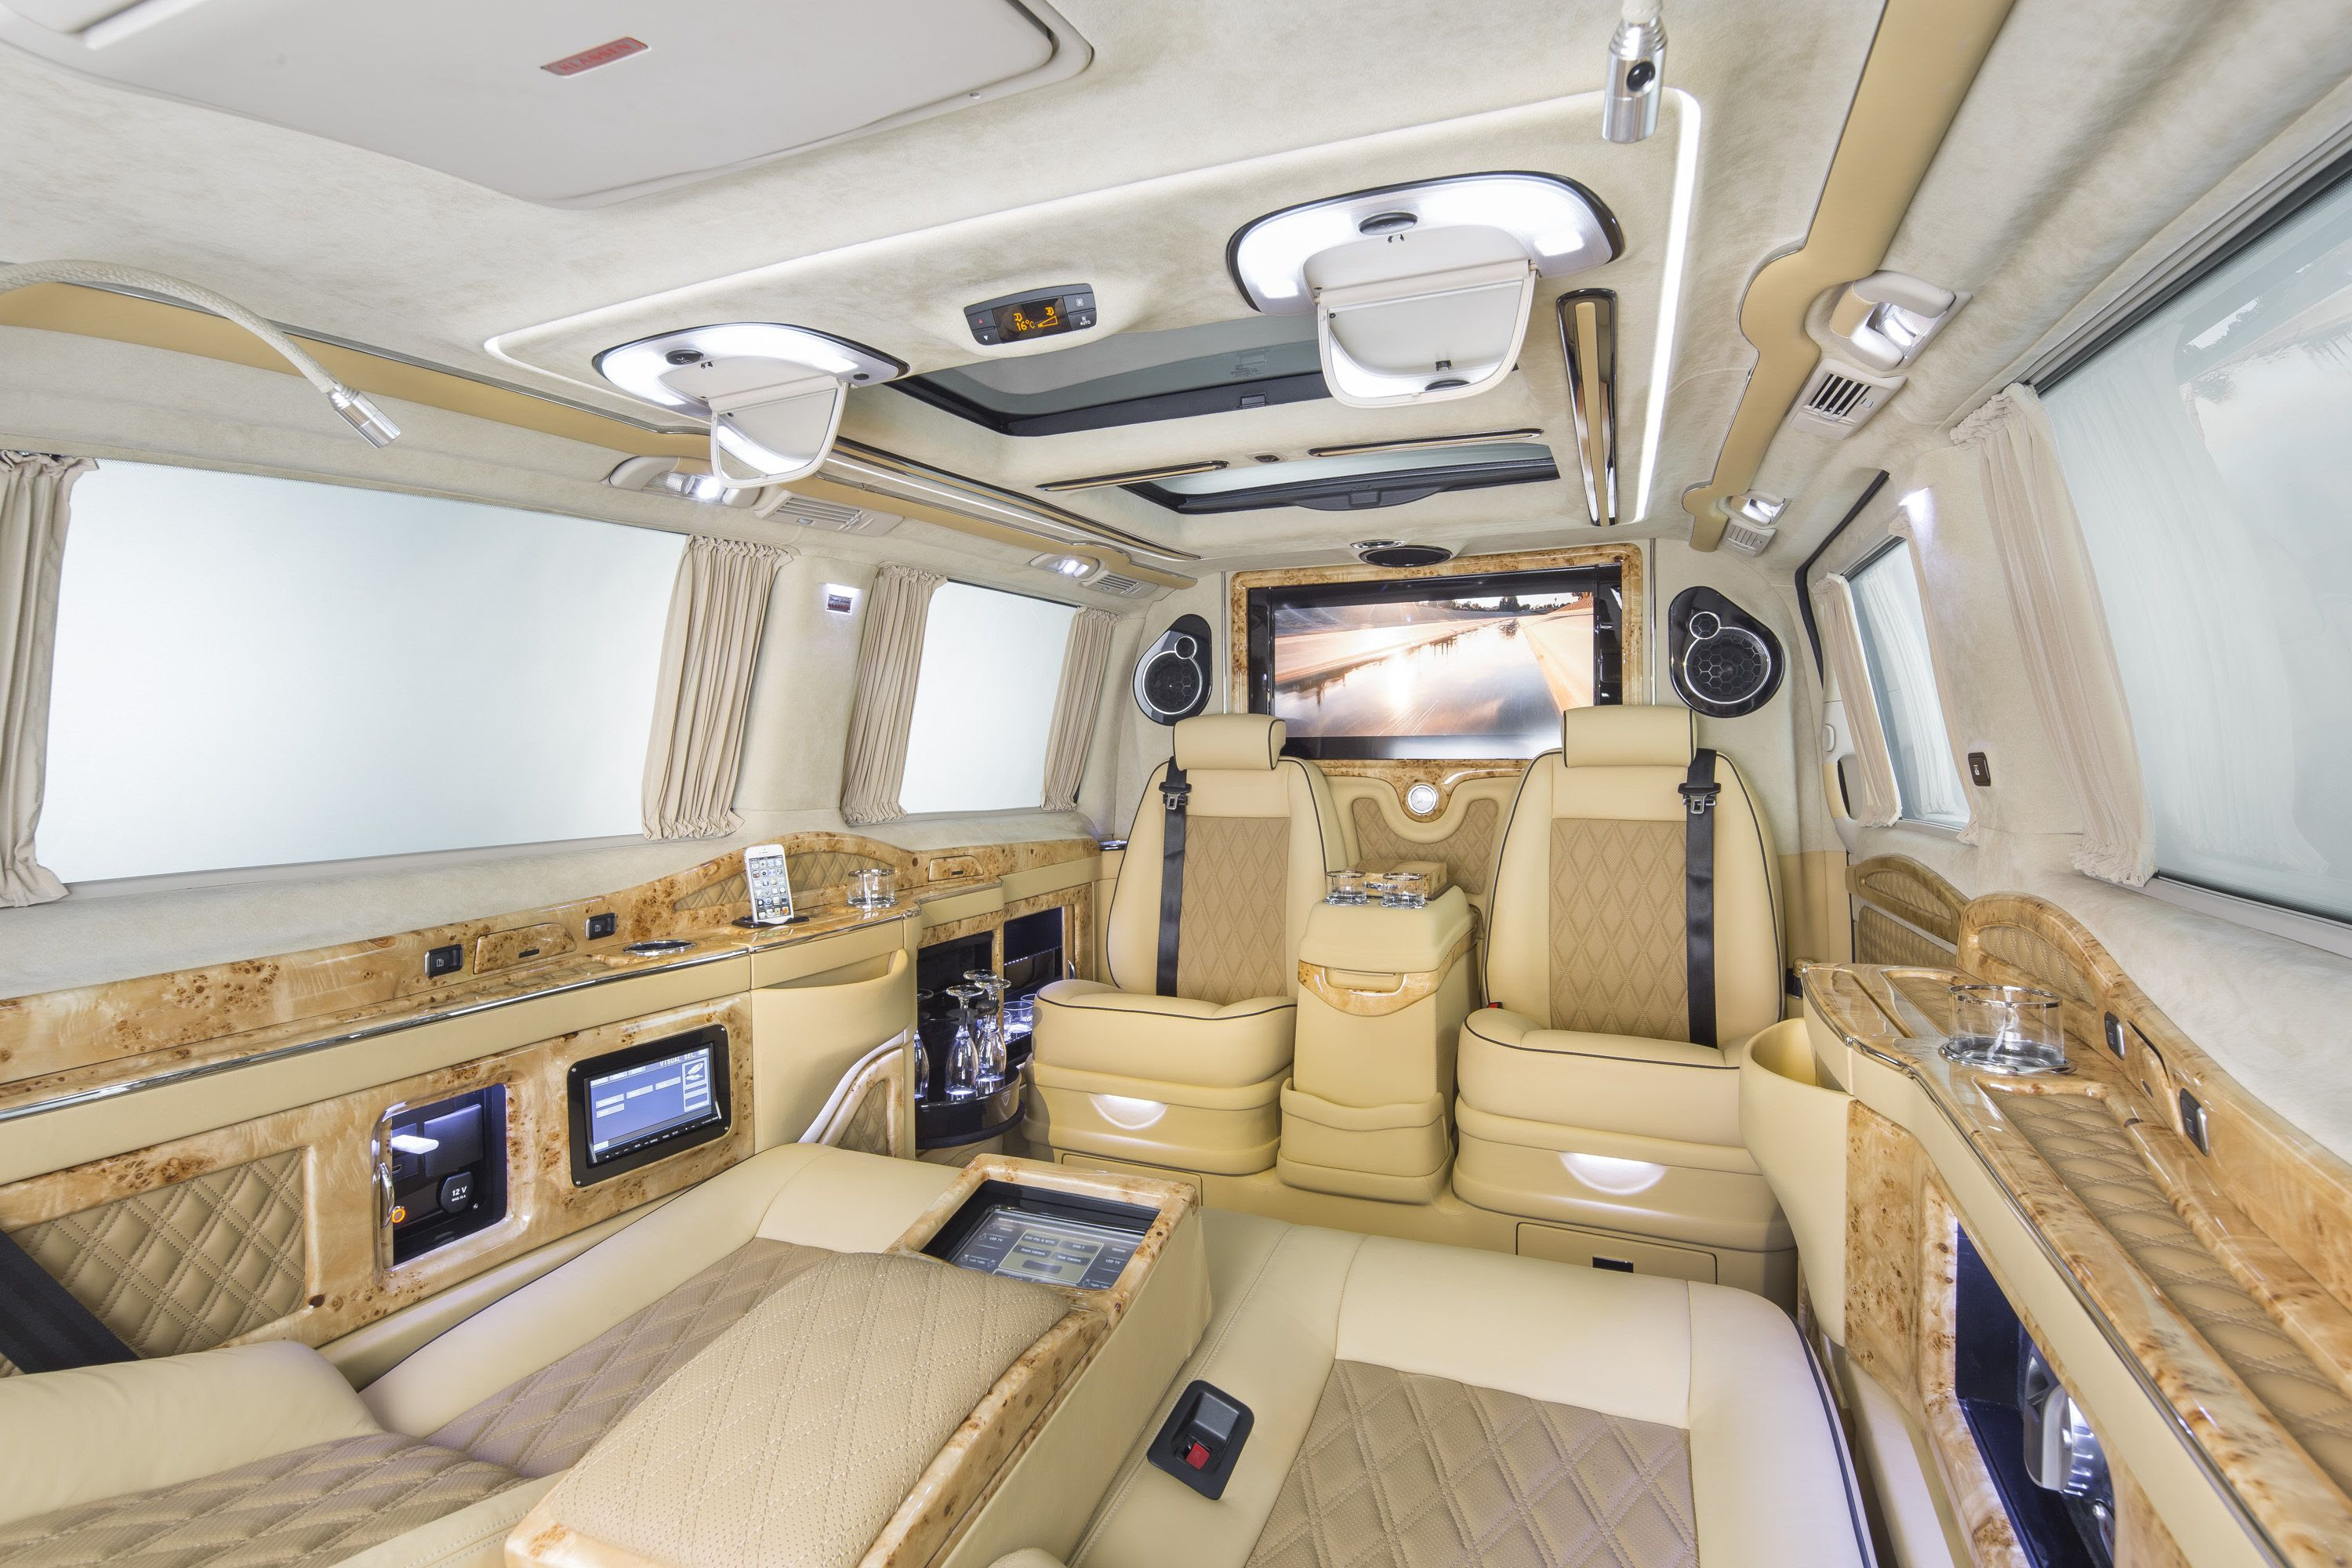 Mercedes Luxury Van Price